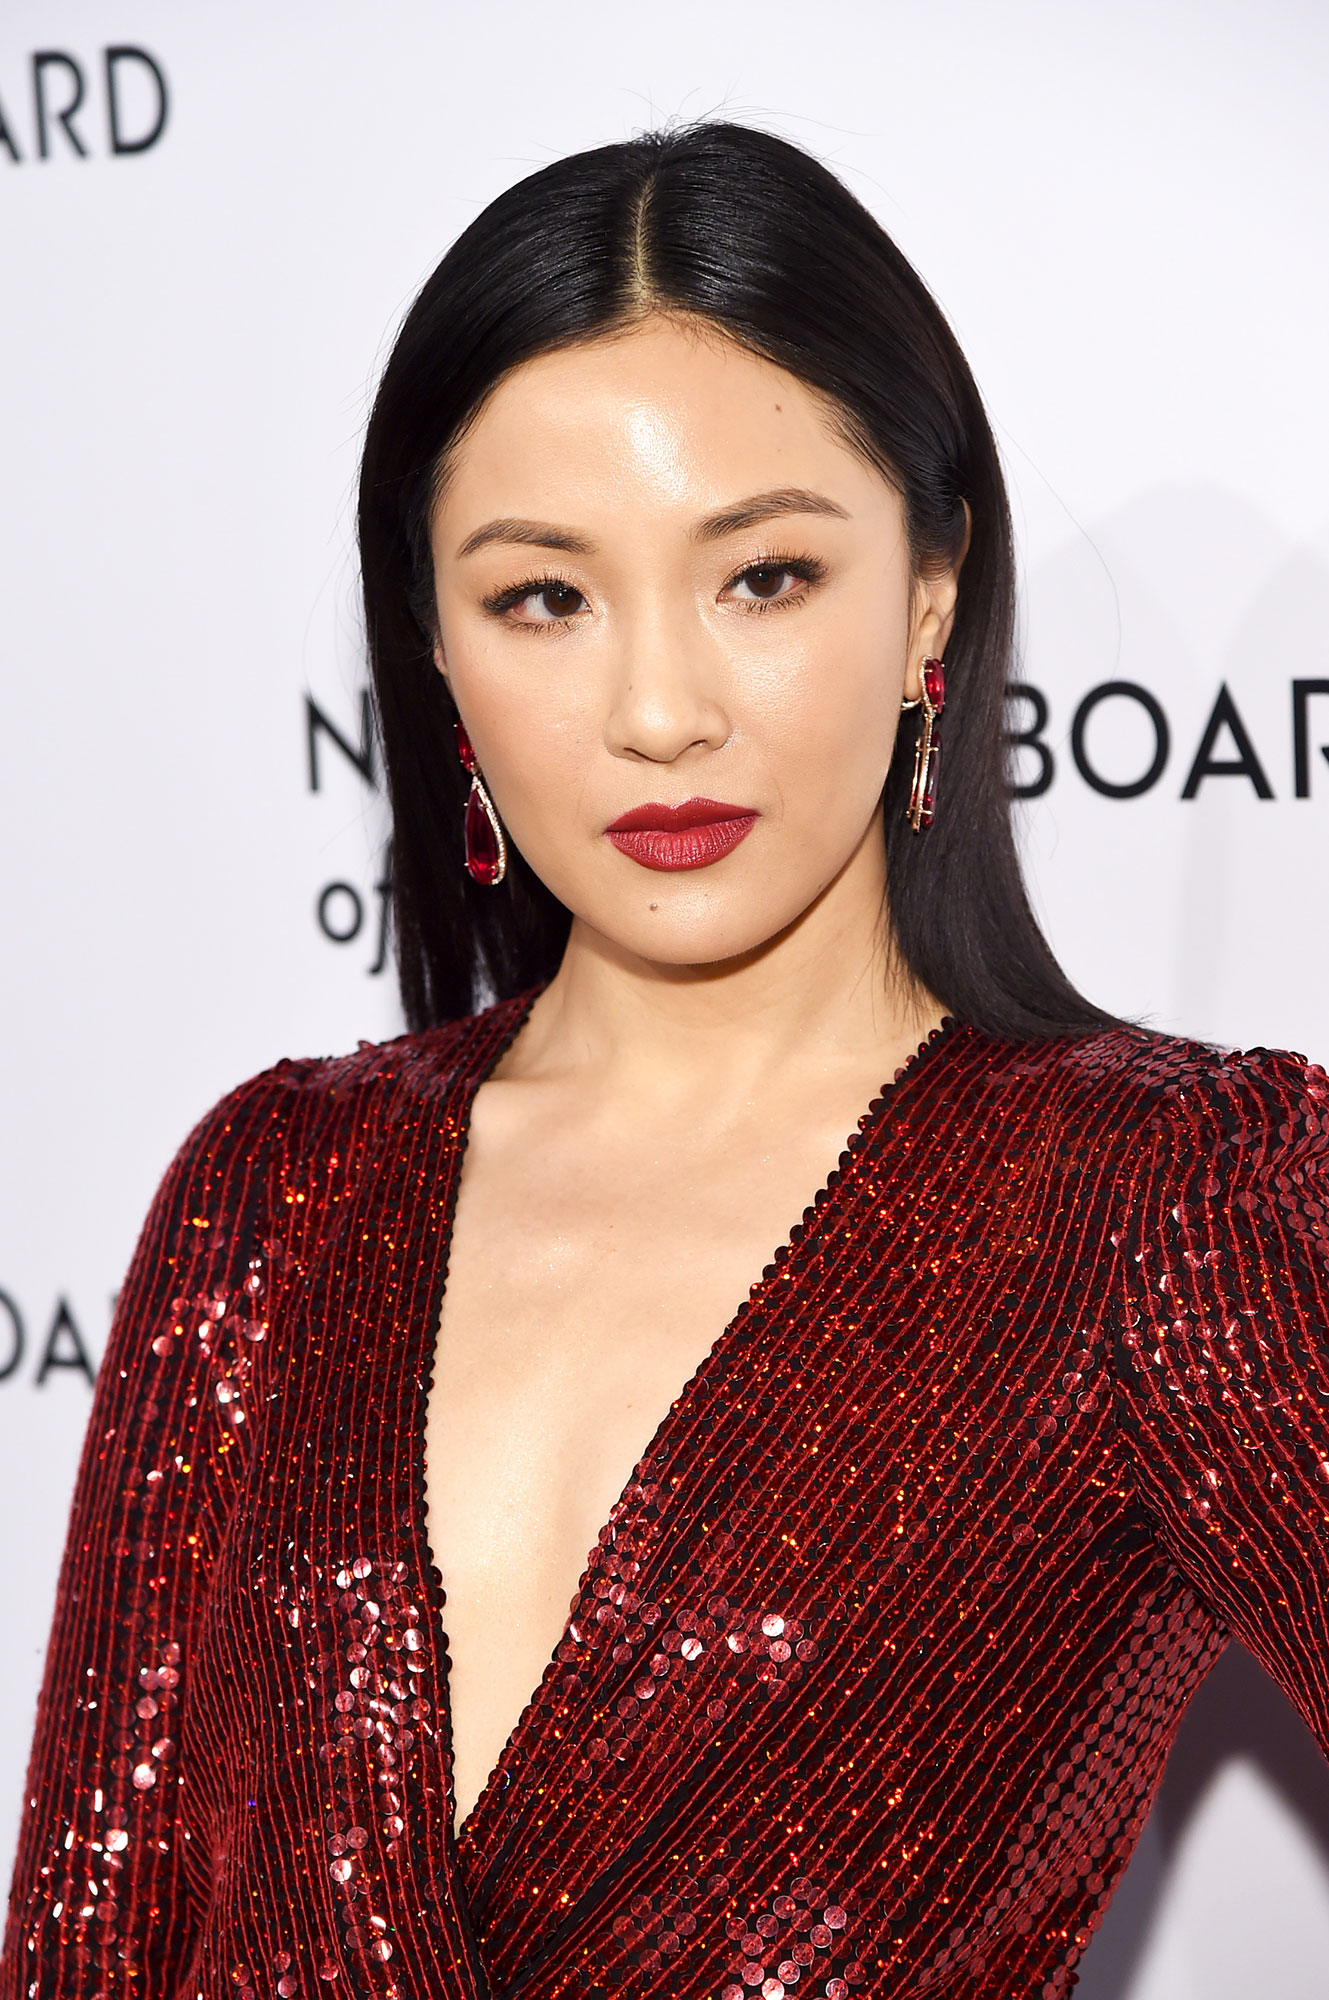 Constance Wu - Matching her lip shade to her sequined dress and eye-catching jeweled earrings, the star of Crazy Rich Asians wore a seductive cardinal red to the National Board of Review Gala on January 8.